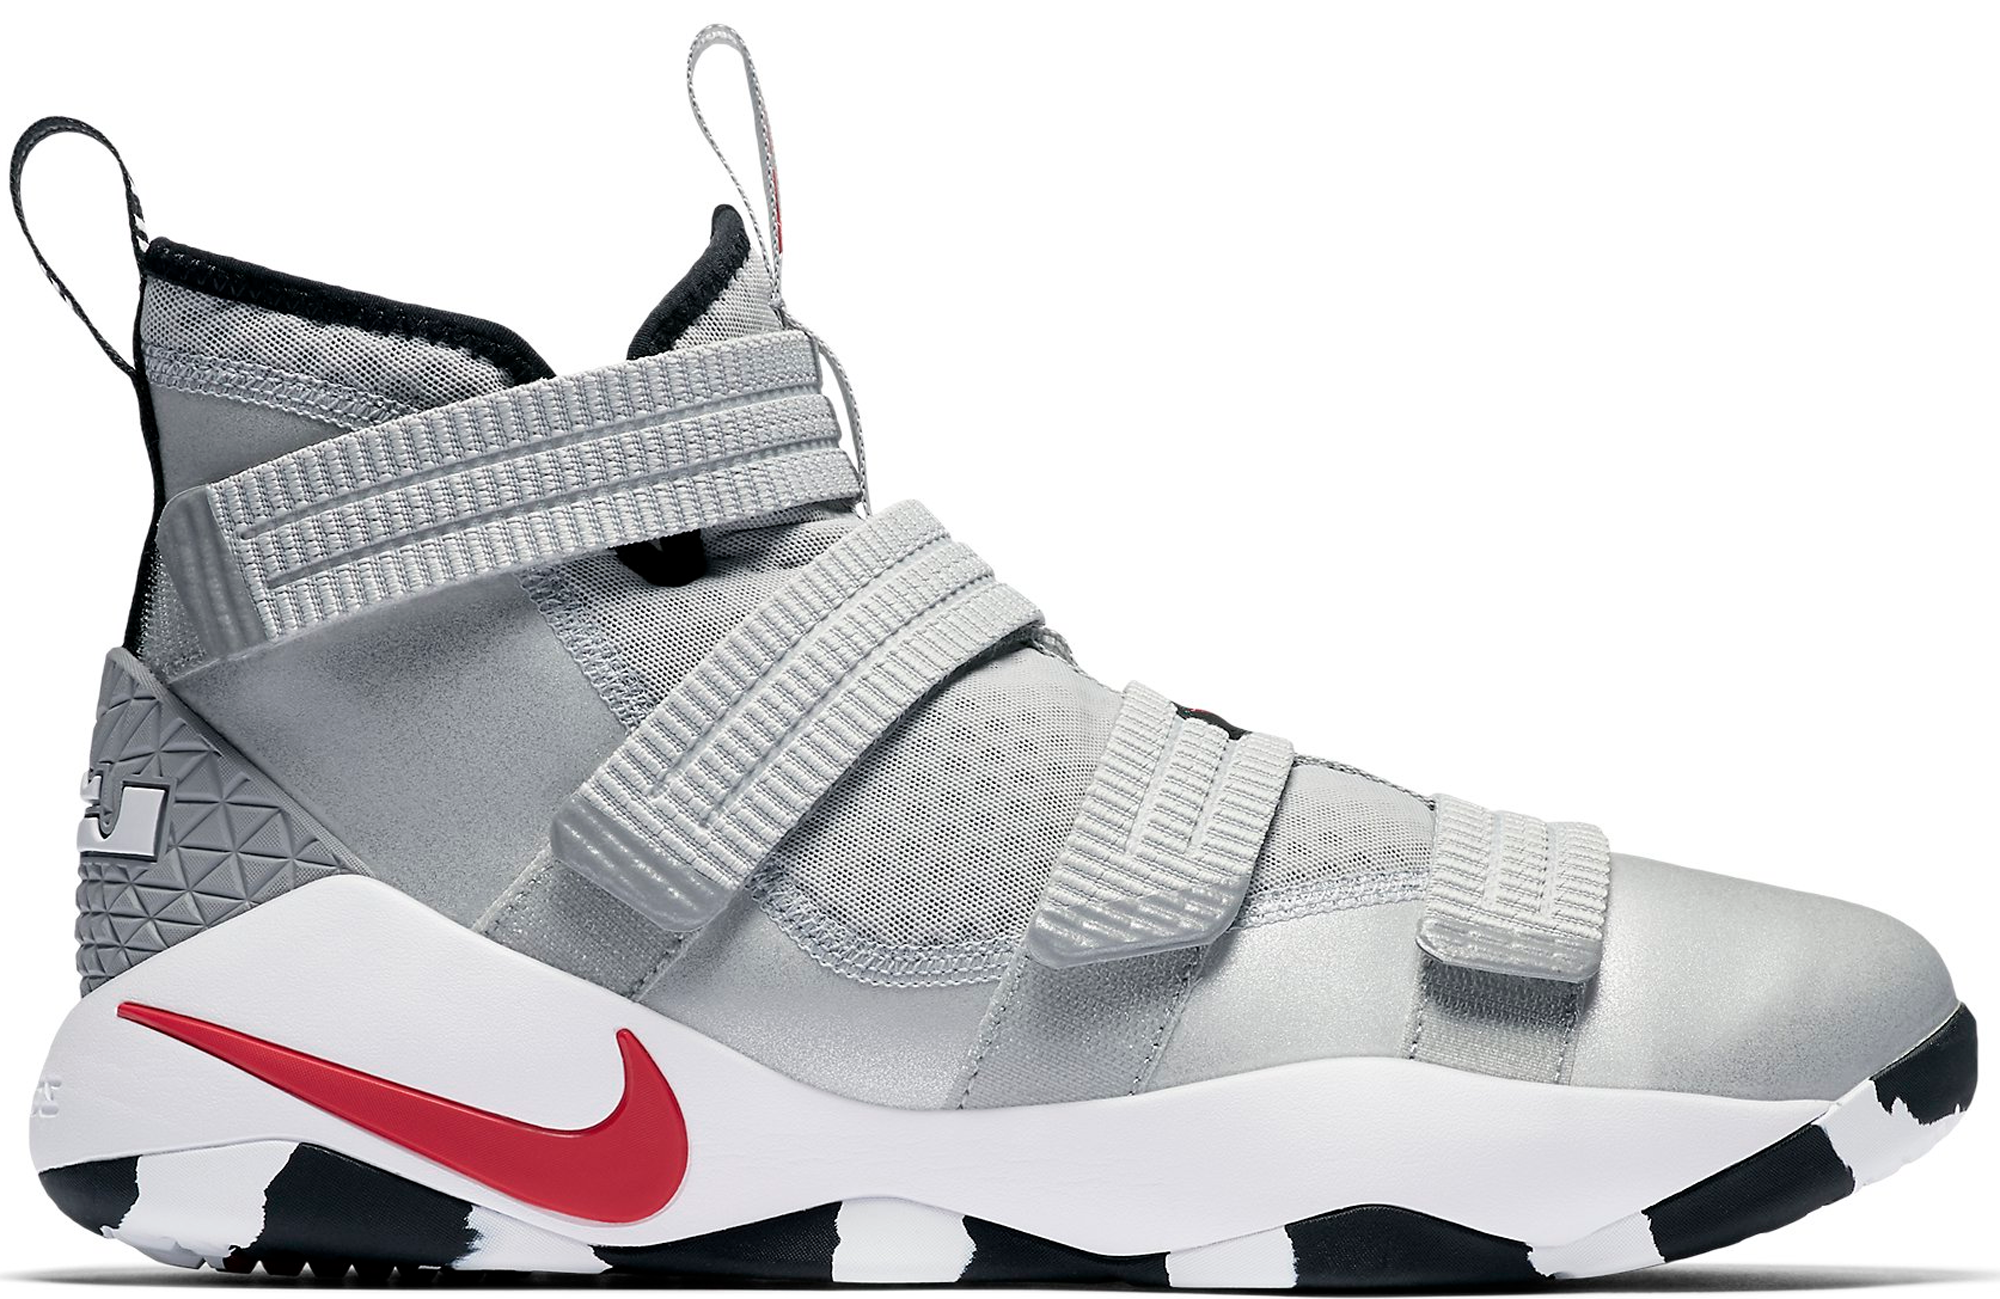 Nike LeBron Zoom Soldier 11 Silver Bullet